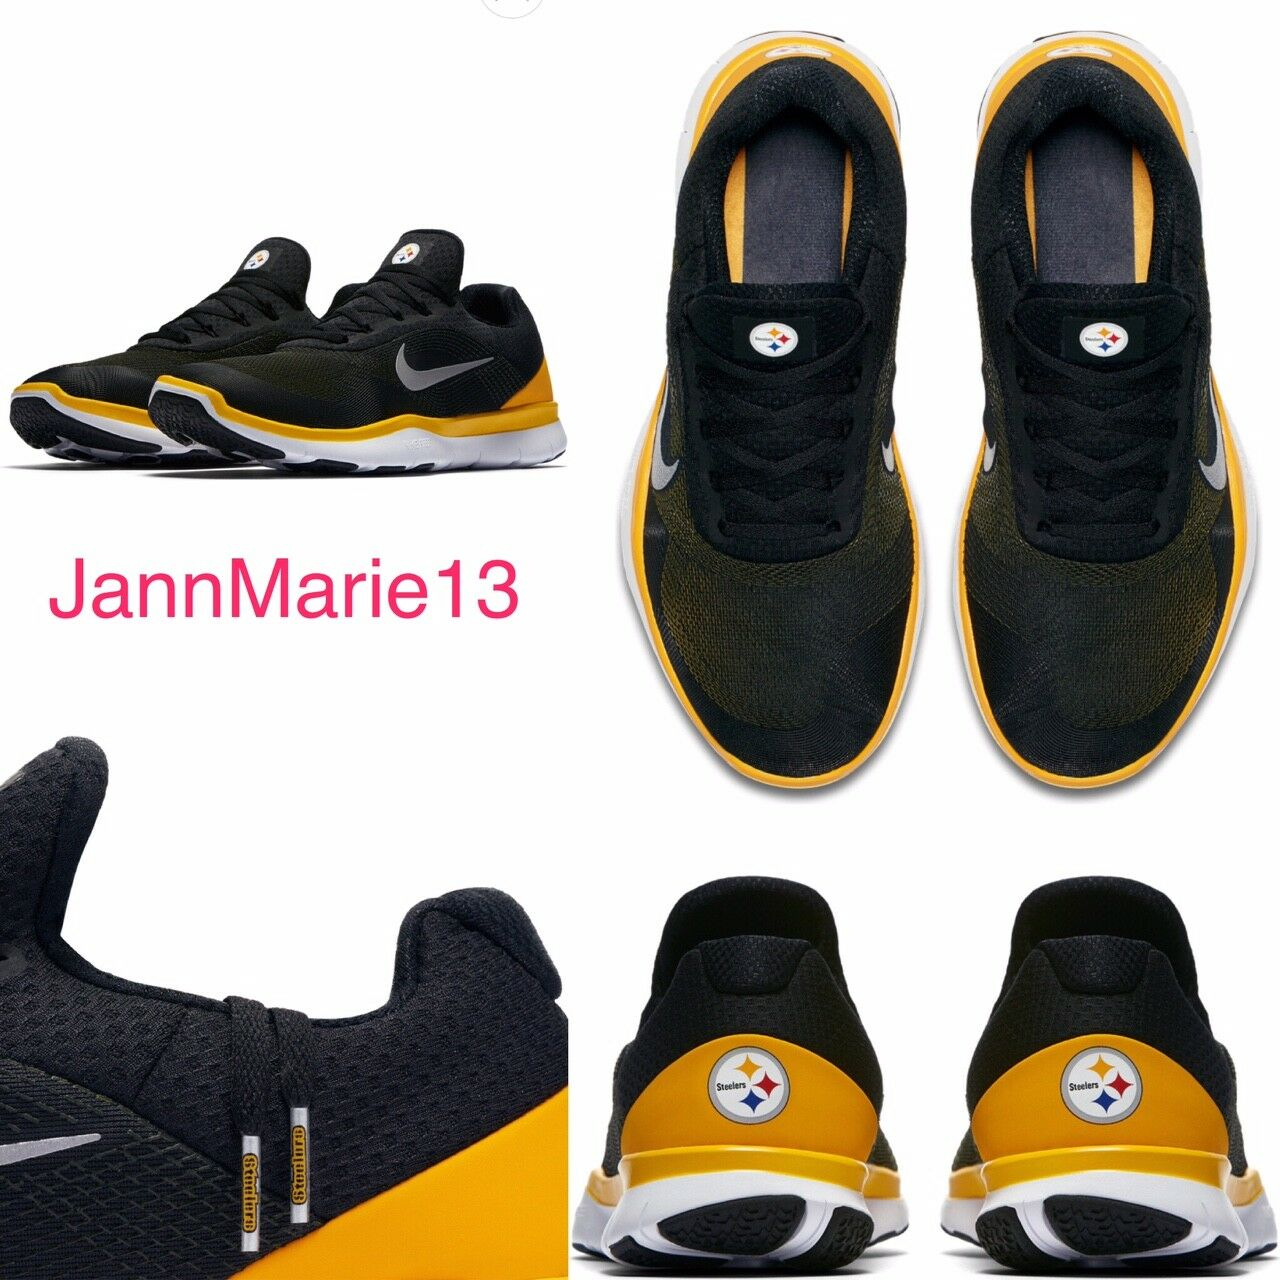 NEW Men's NFL Nike Free Trainer V7 PITTSBURGH STEELER shoes Sneakers 11 12 13 14